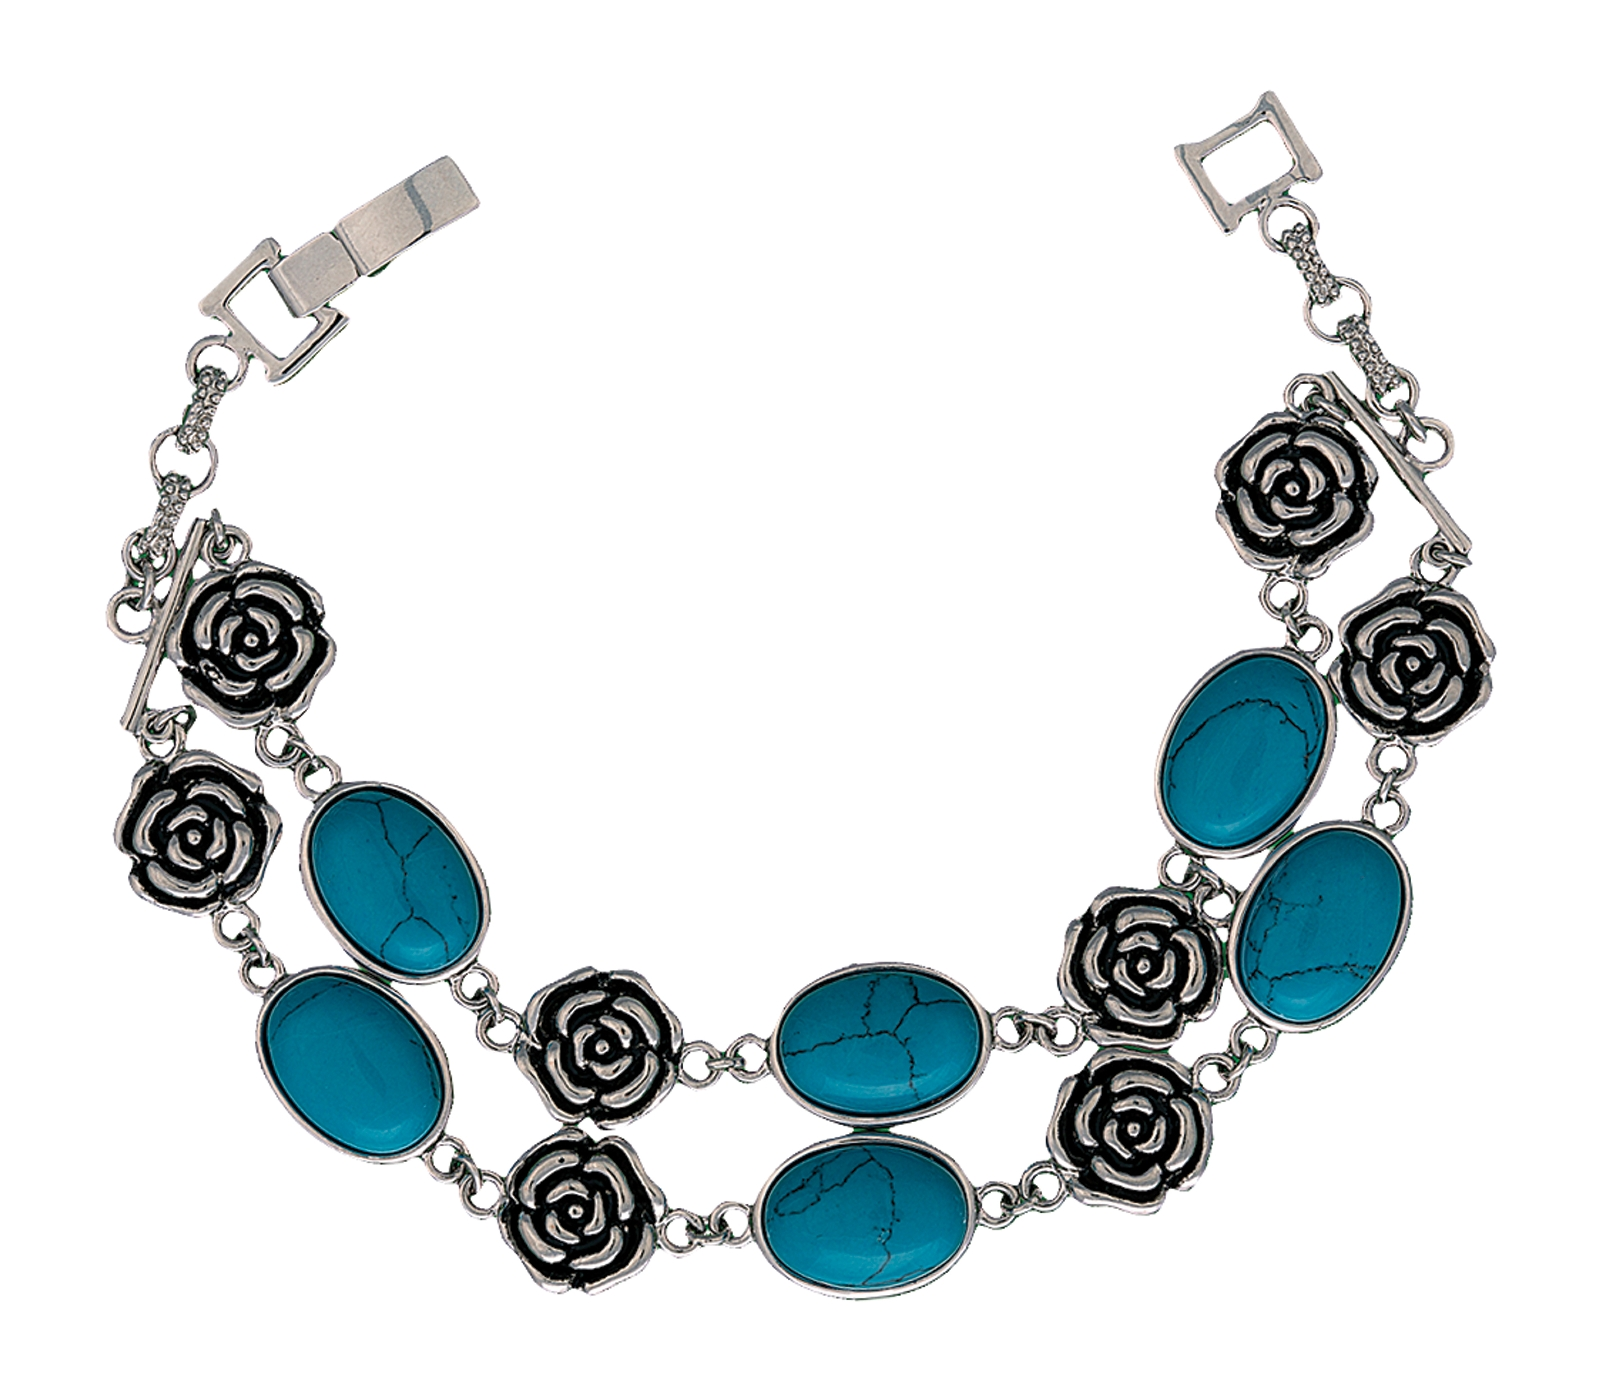 Montana Silversmiths Turquoise and Roses Link Bracelet